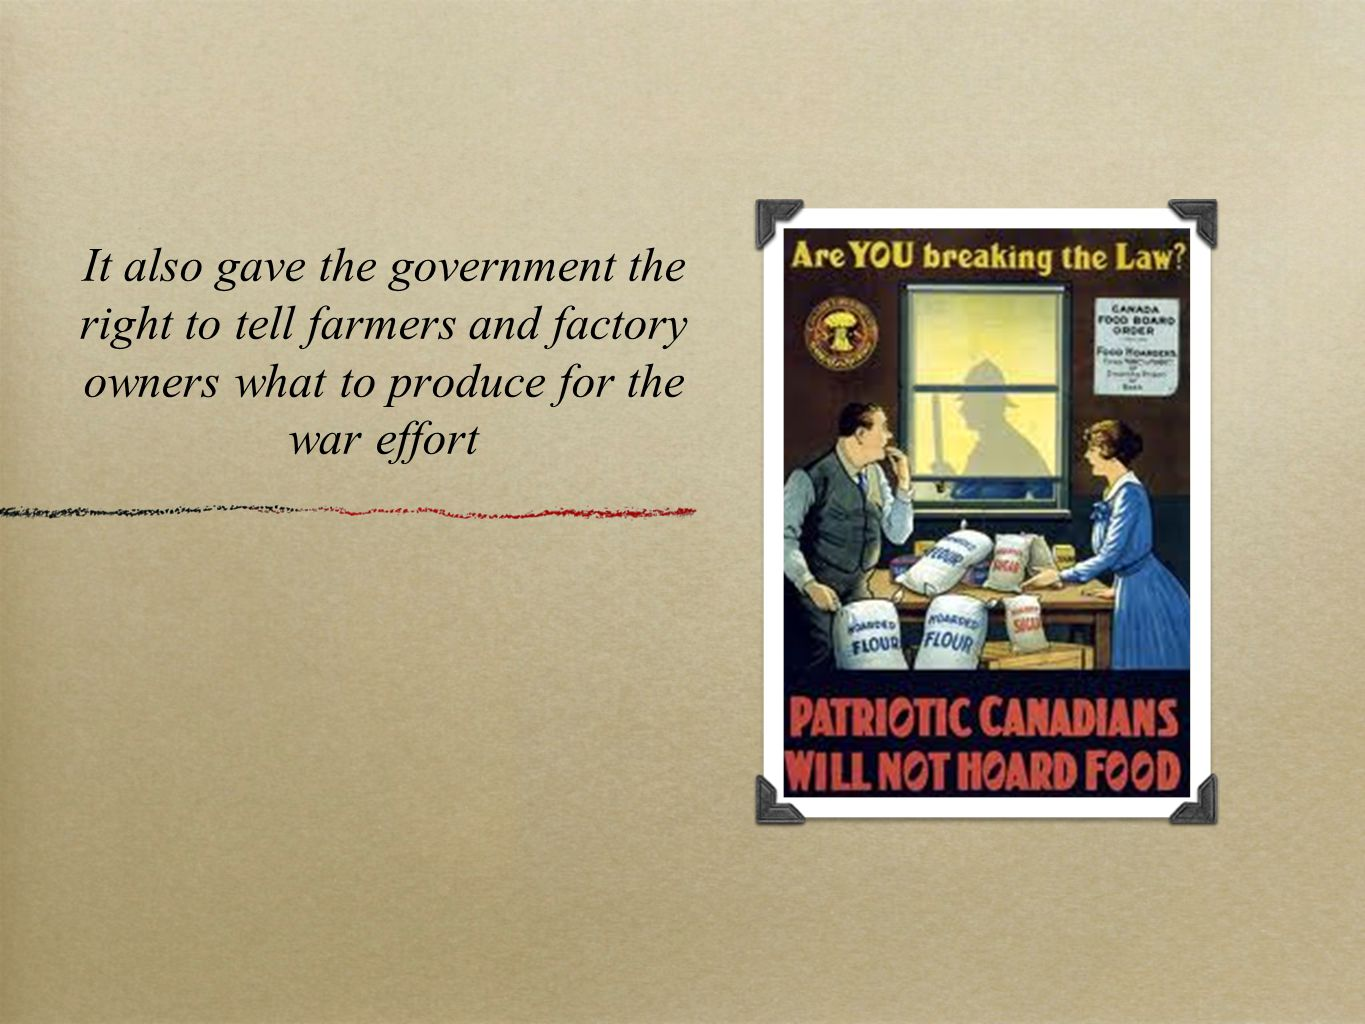 It also gave the government the right to tell farmers and factory owners what to produce for the war effort